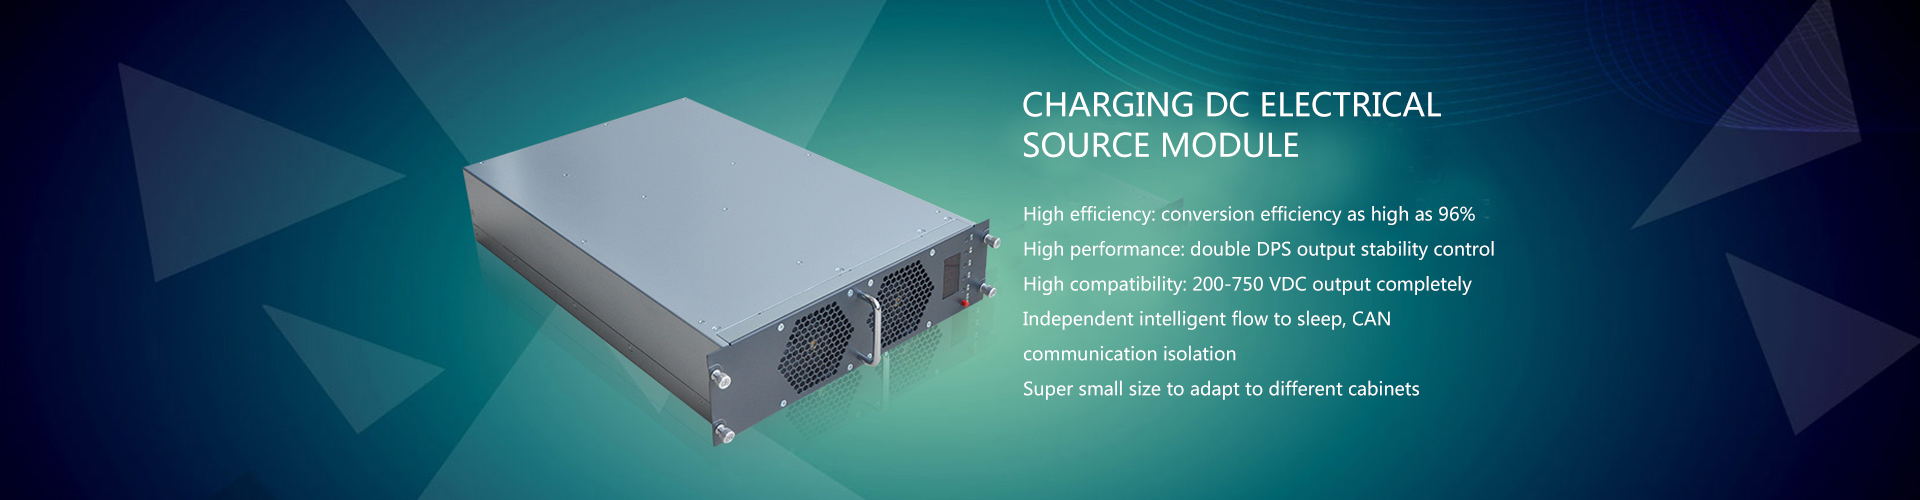 Charging DC electrical source module